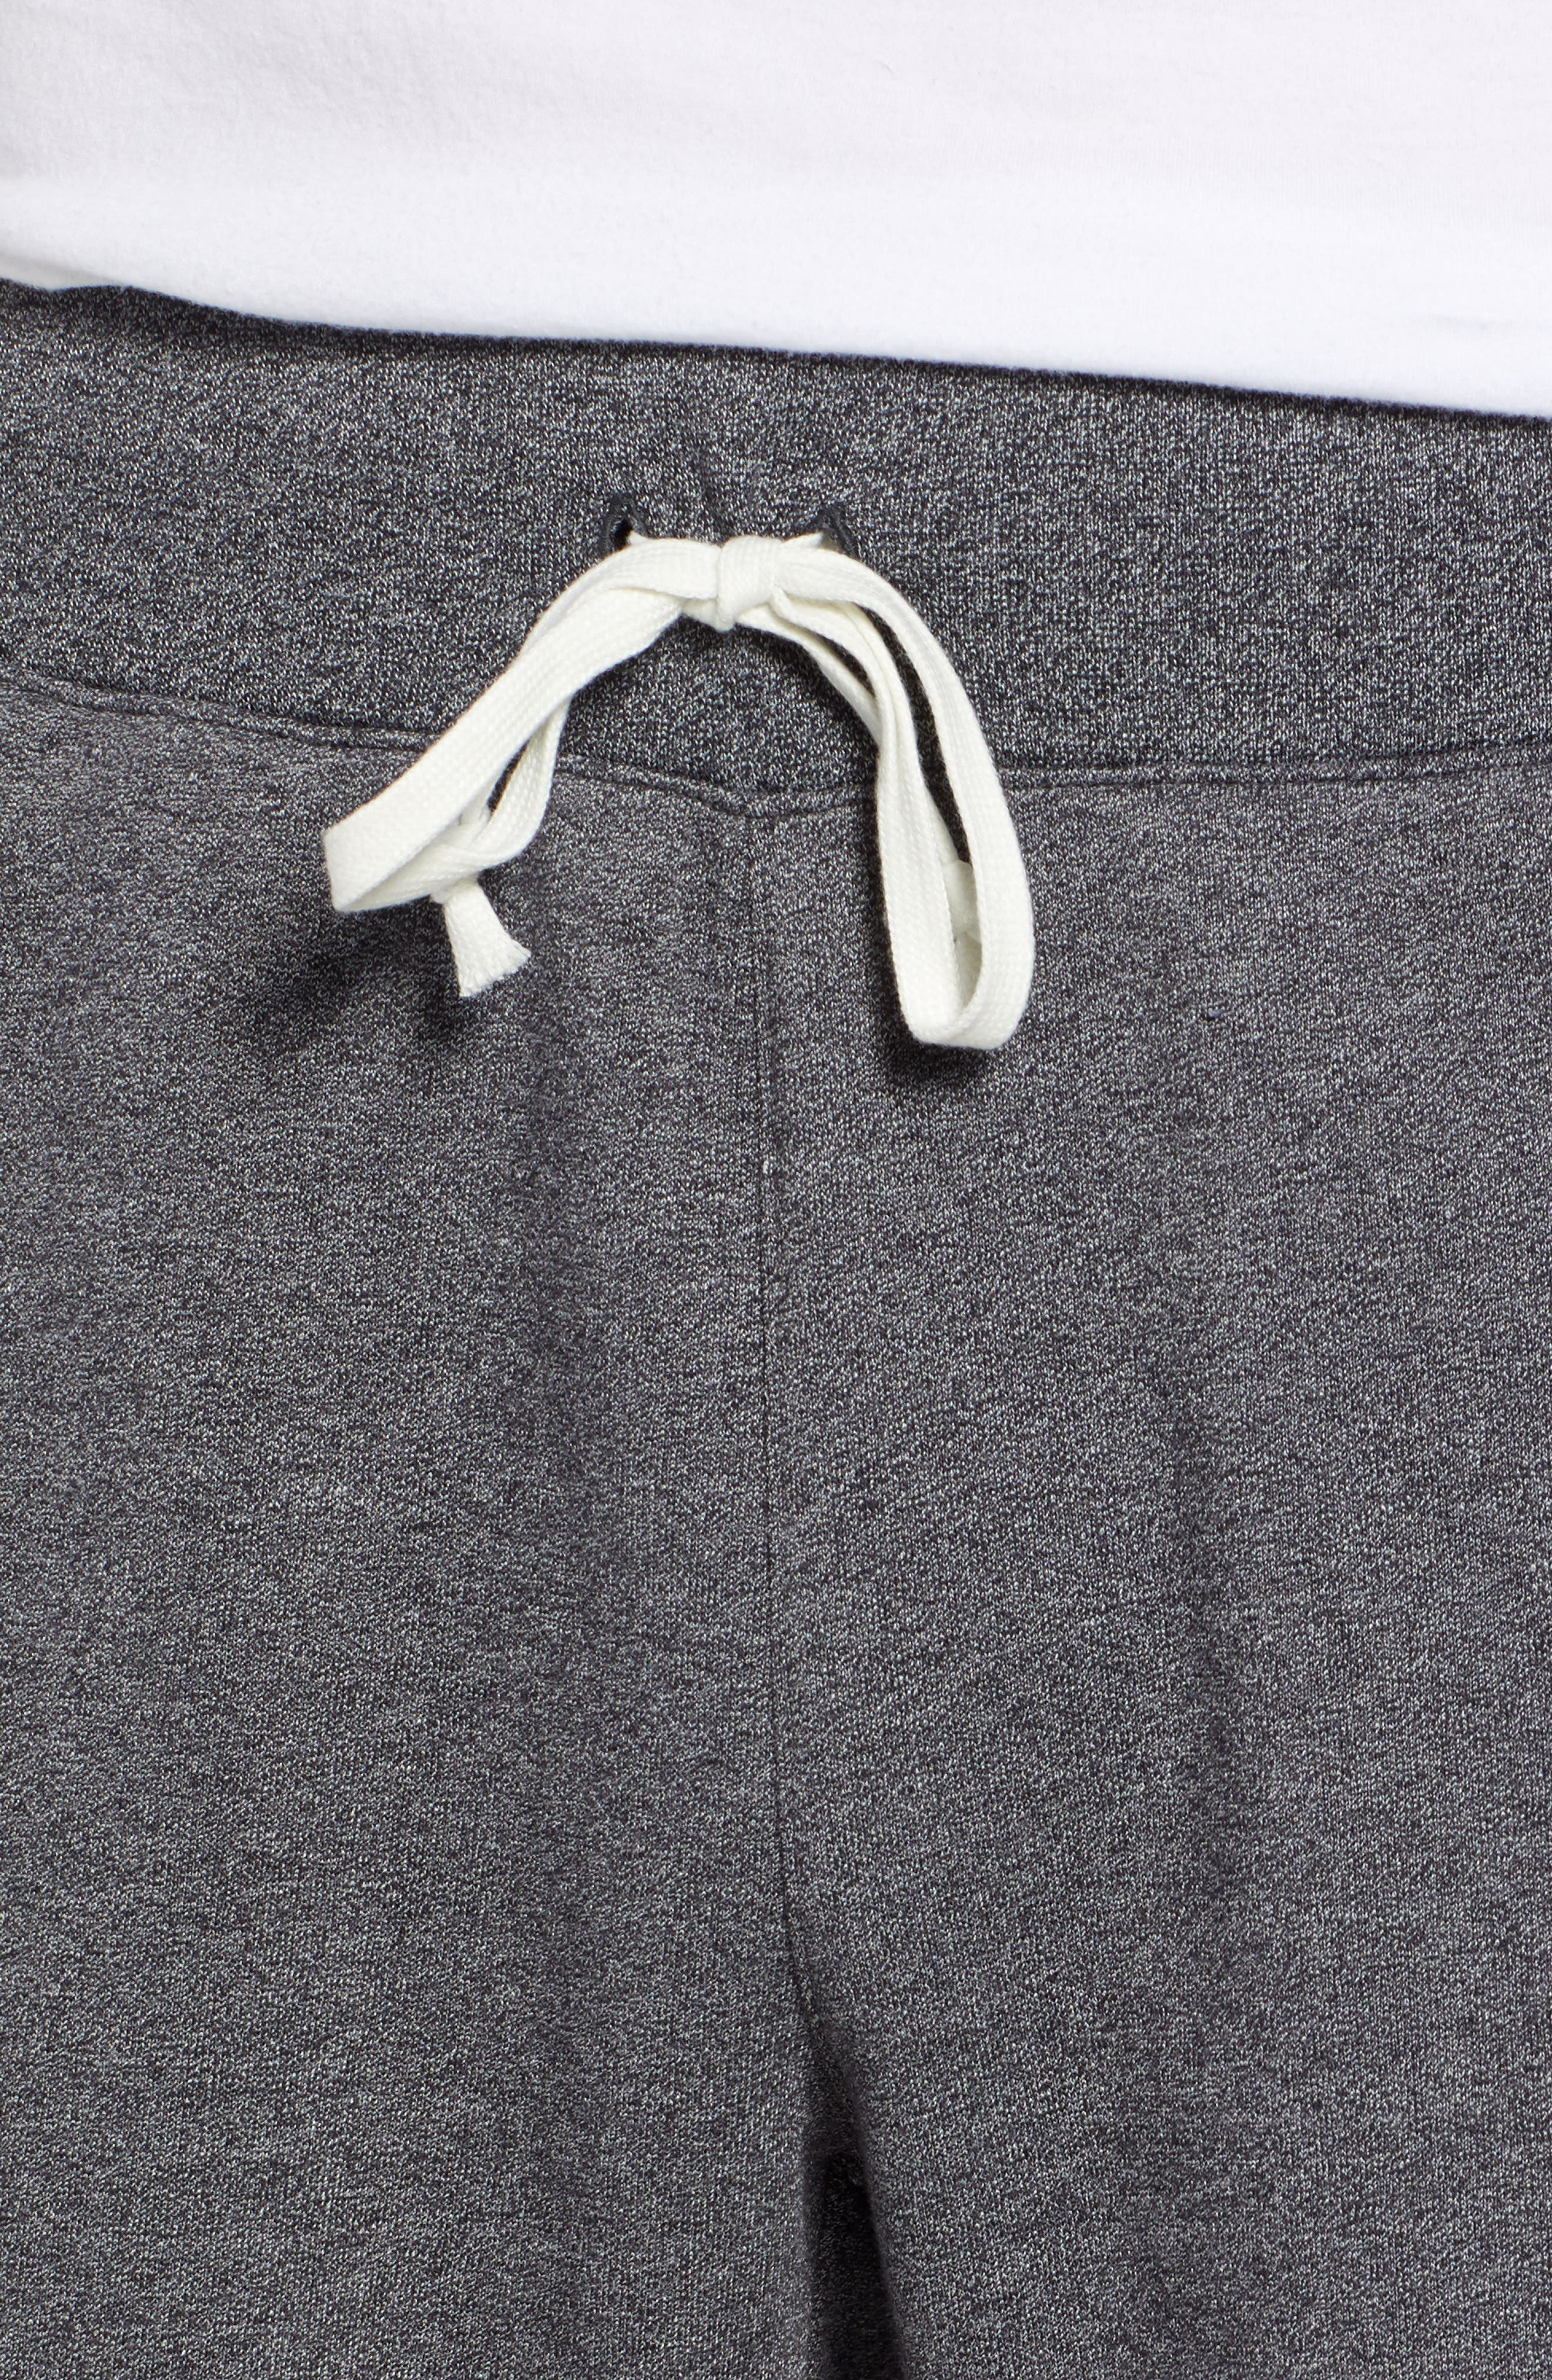 Heritage Knit Shorts,                             Alternate thumbnail 4, color,                             BLACK/ HEATHER/ SAIL